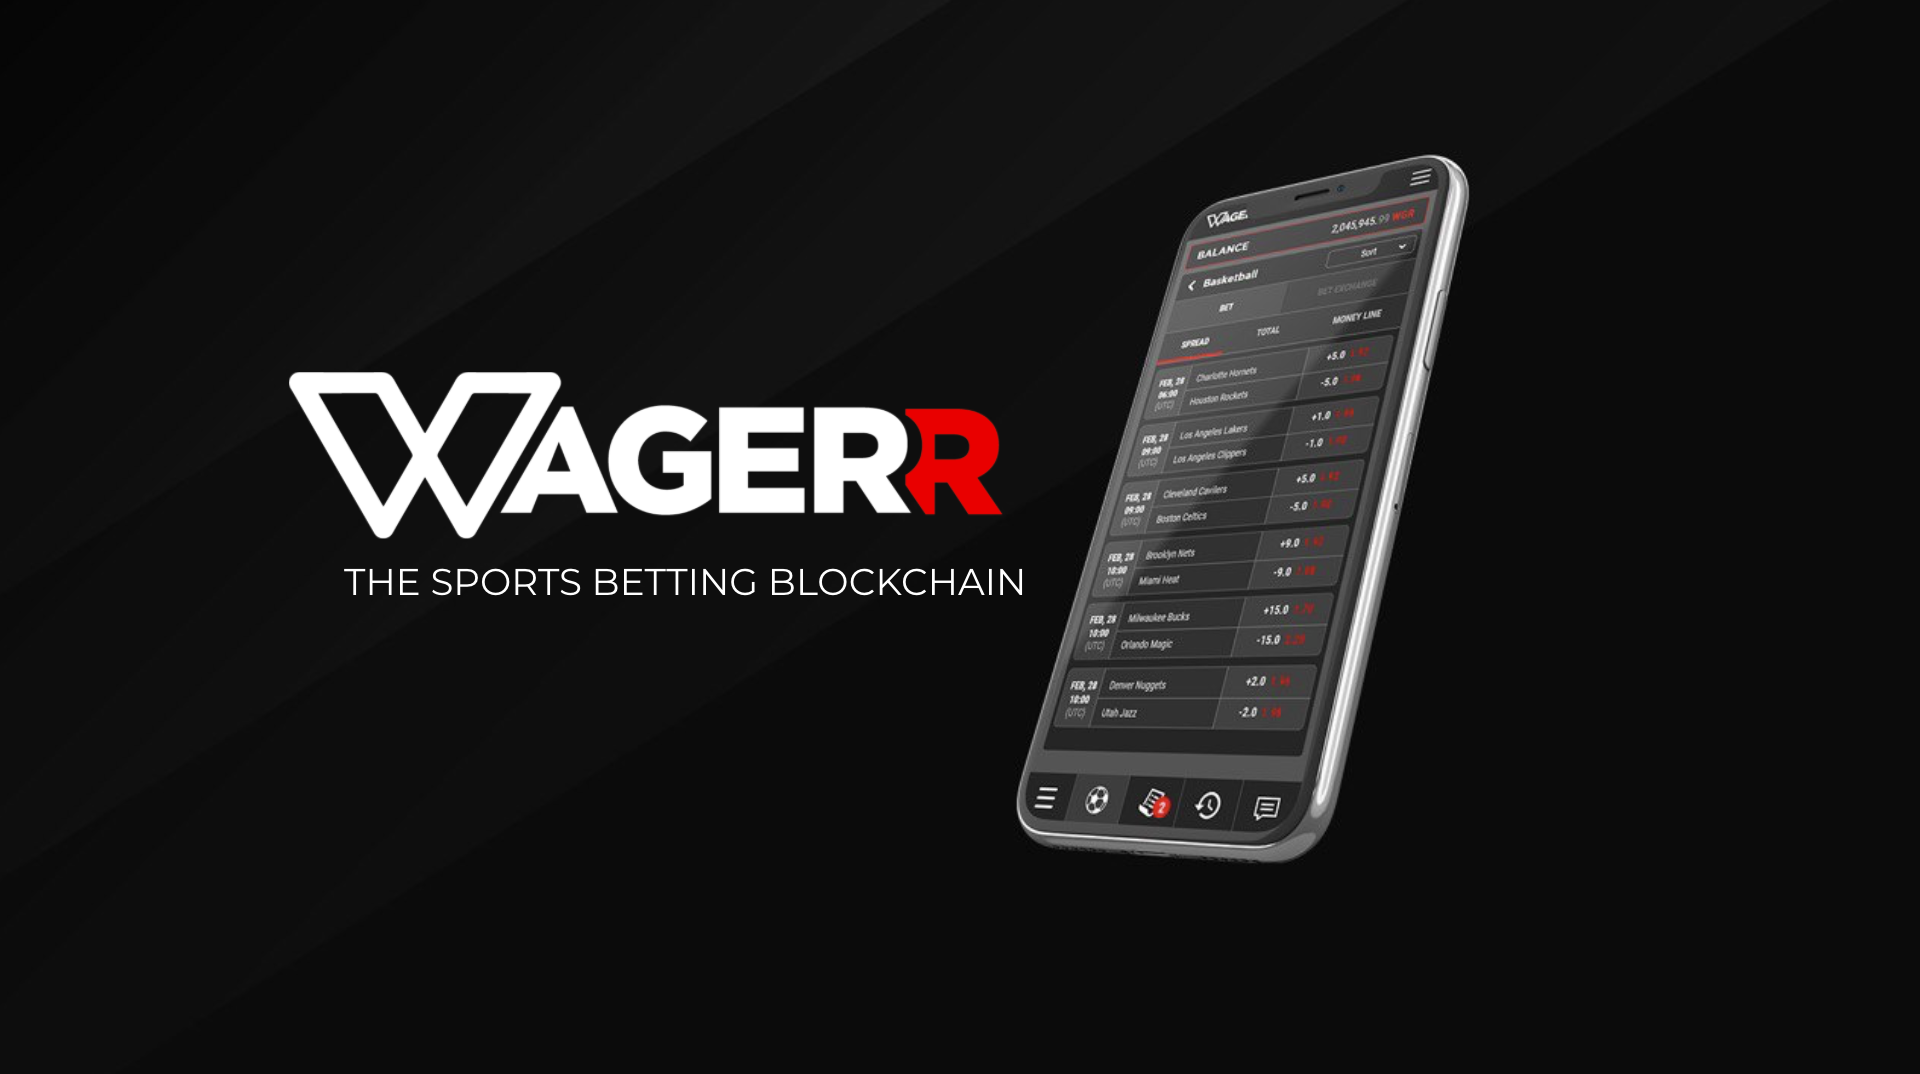 Wagerr: The Blockchain Bookie